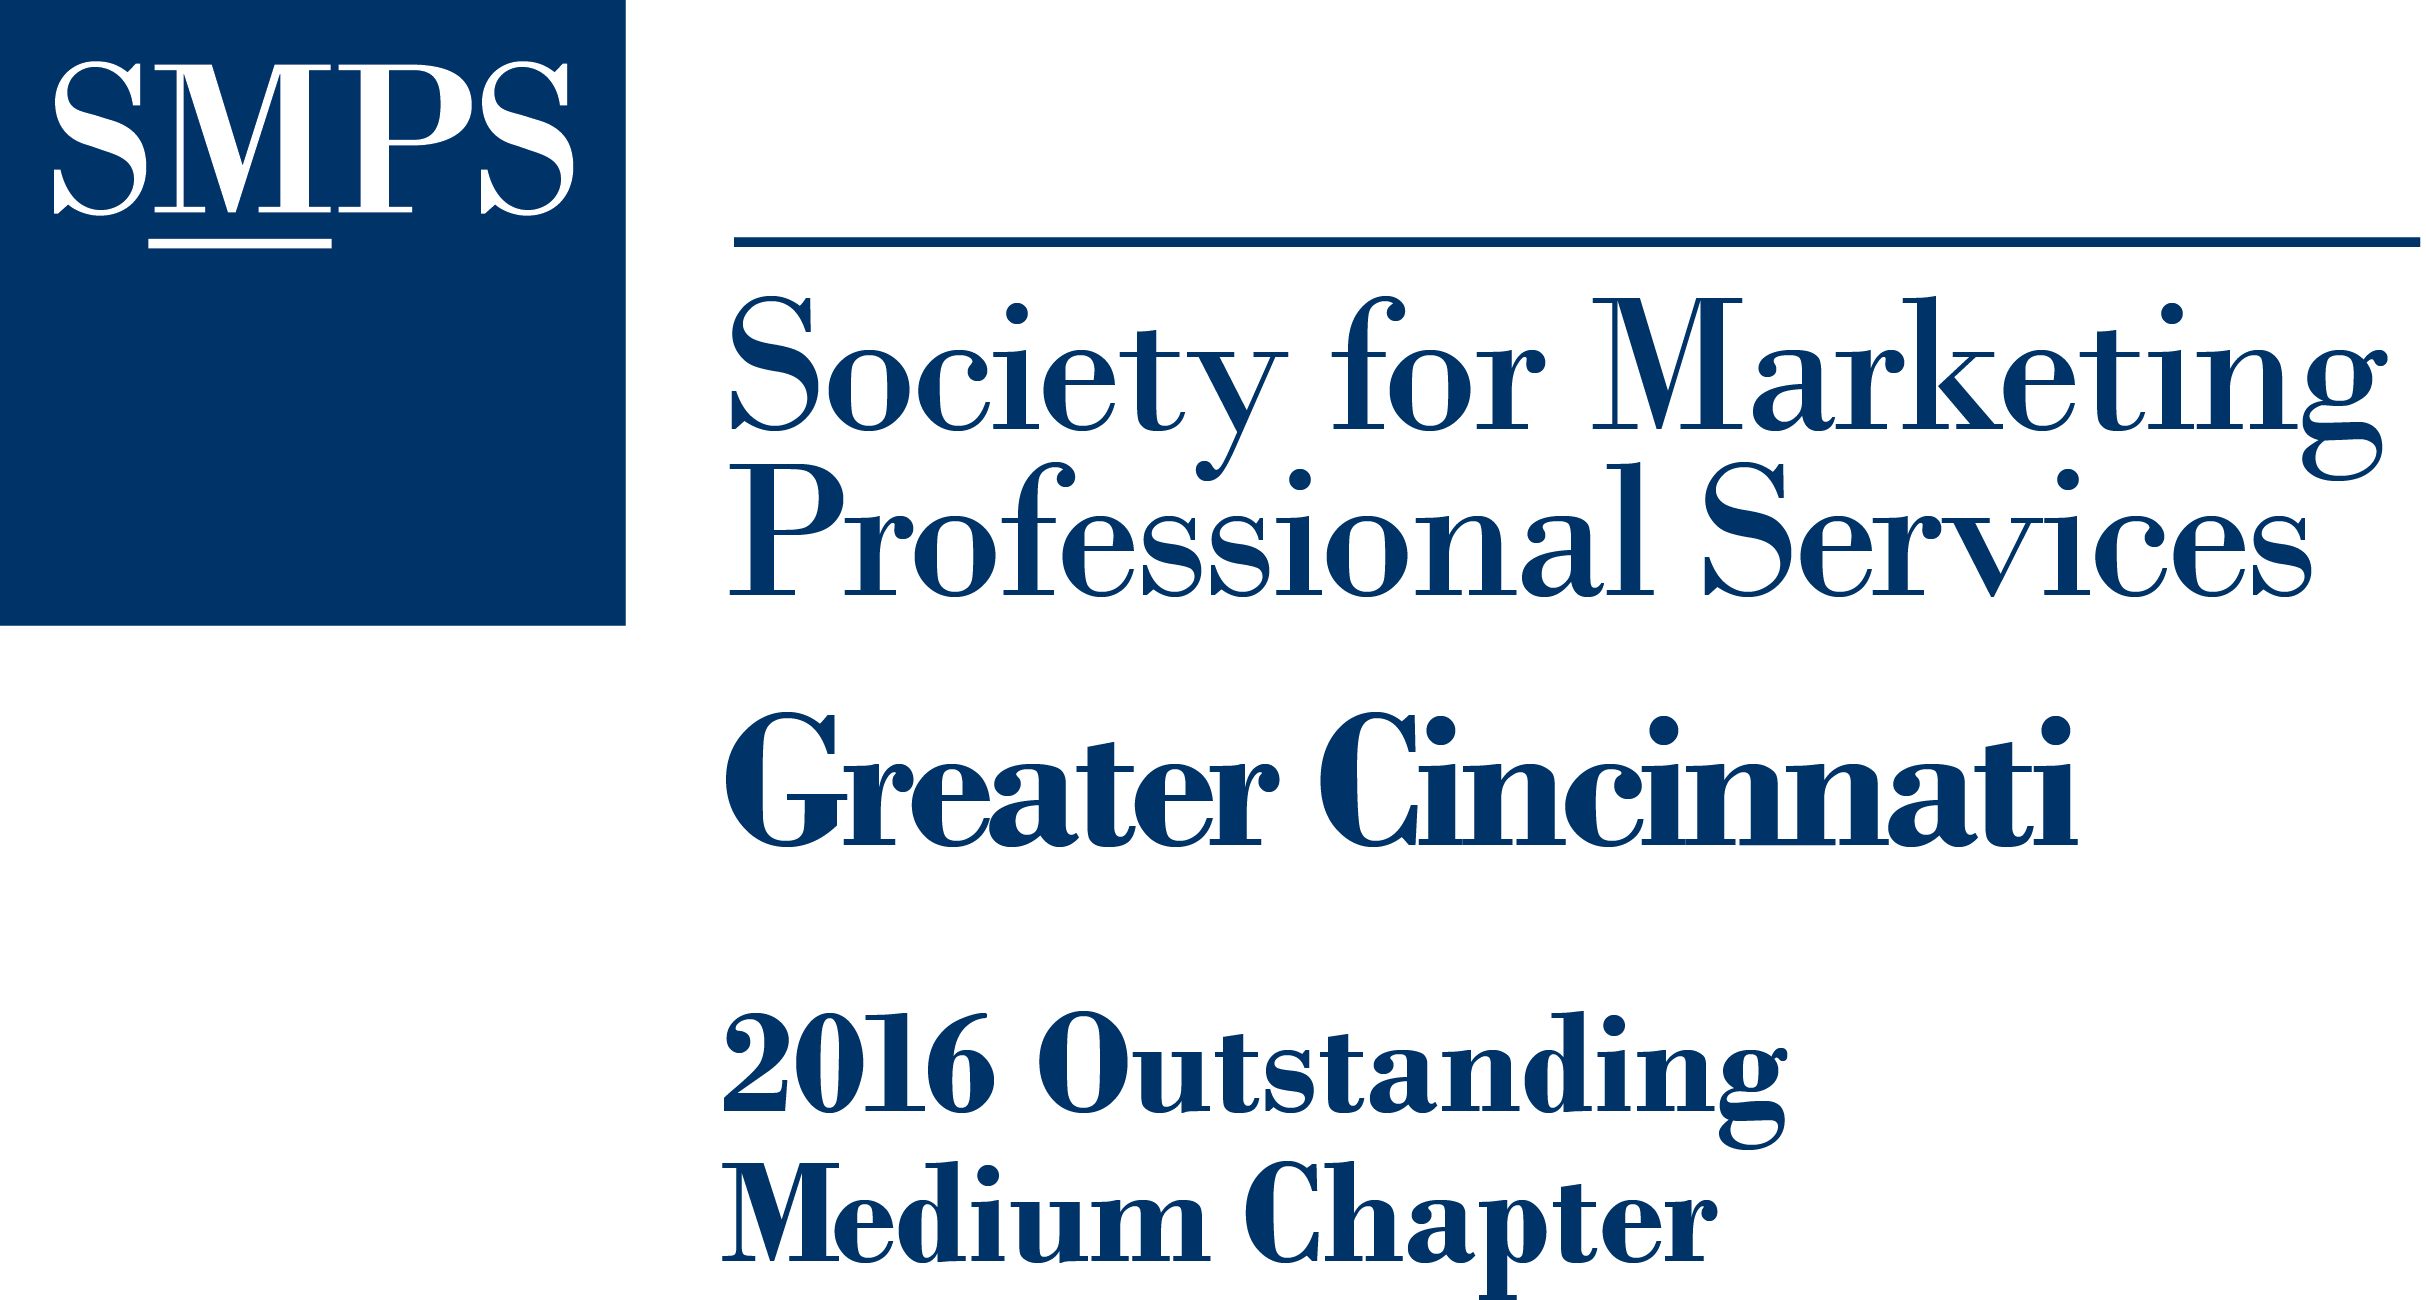 SMPS Greater Cincinnati